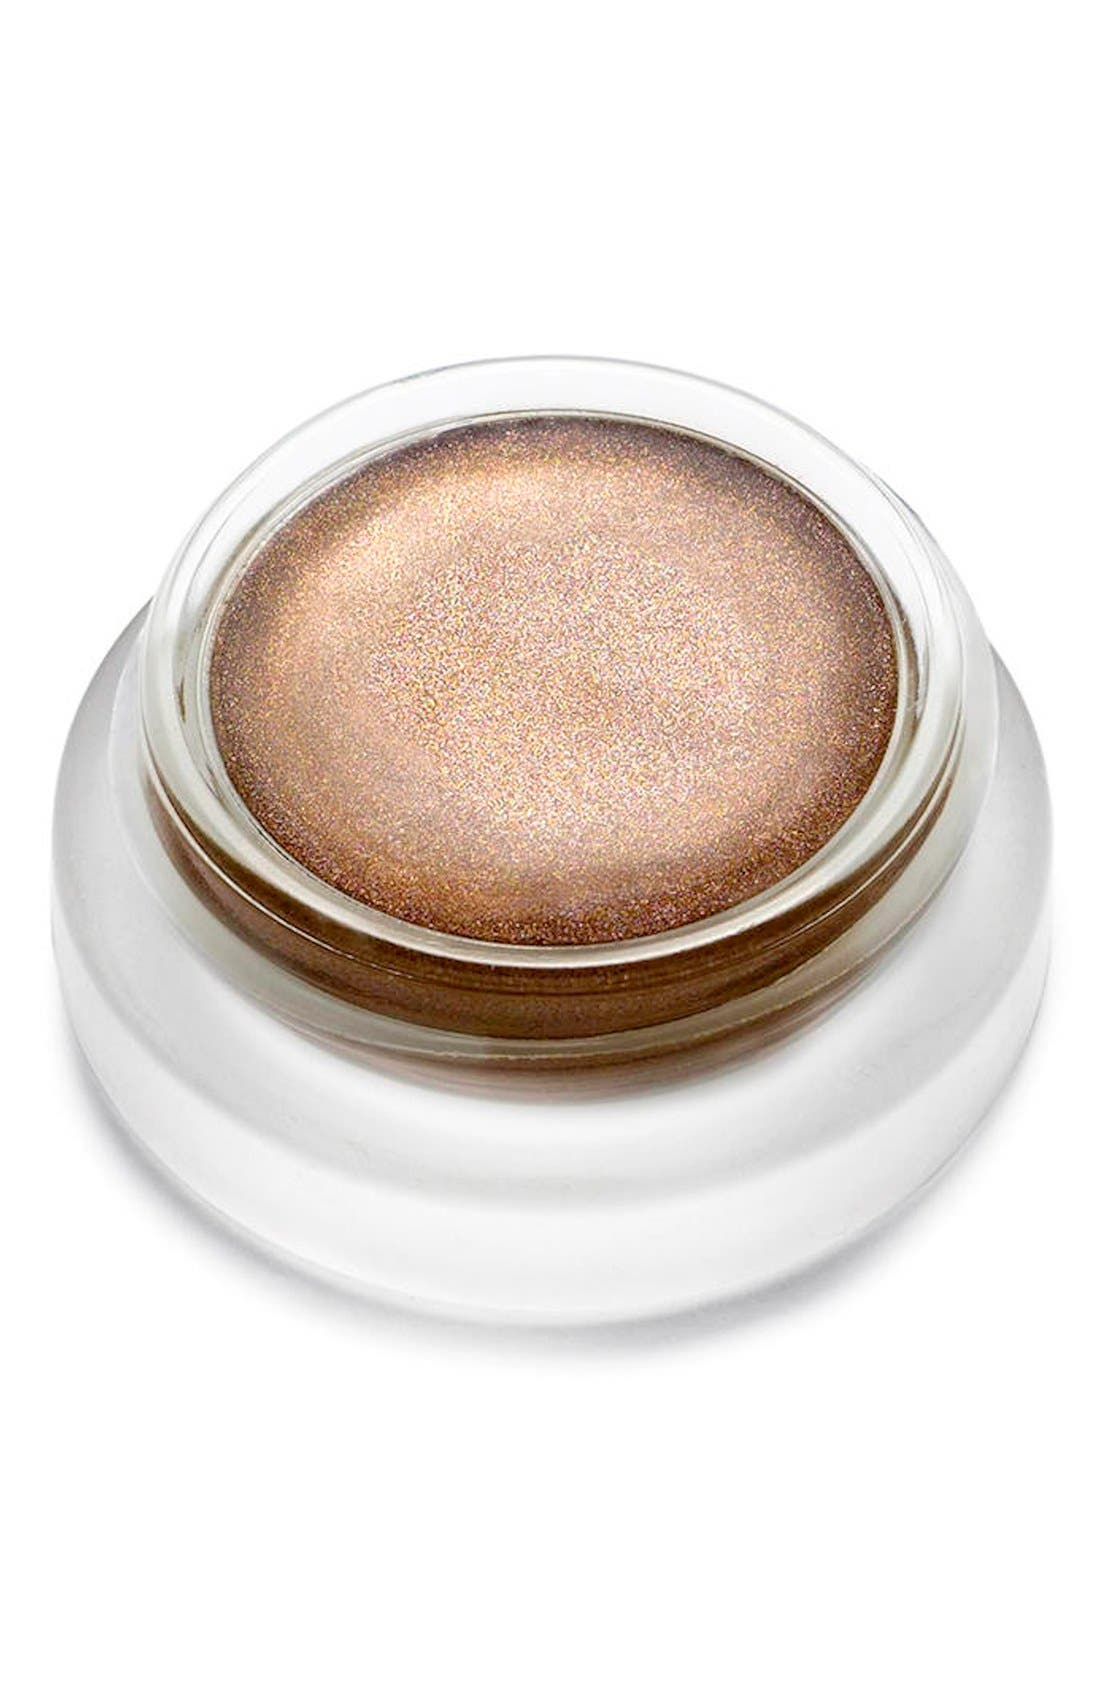 Buriti Bronzer,                         Main,                         color, NO COLOR